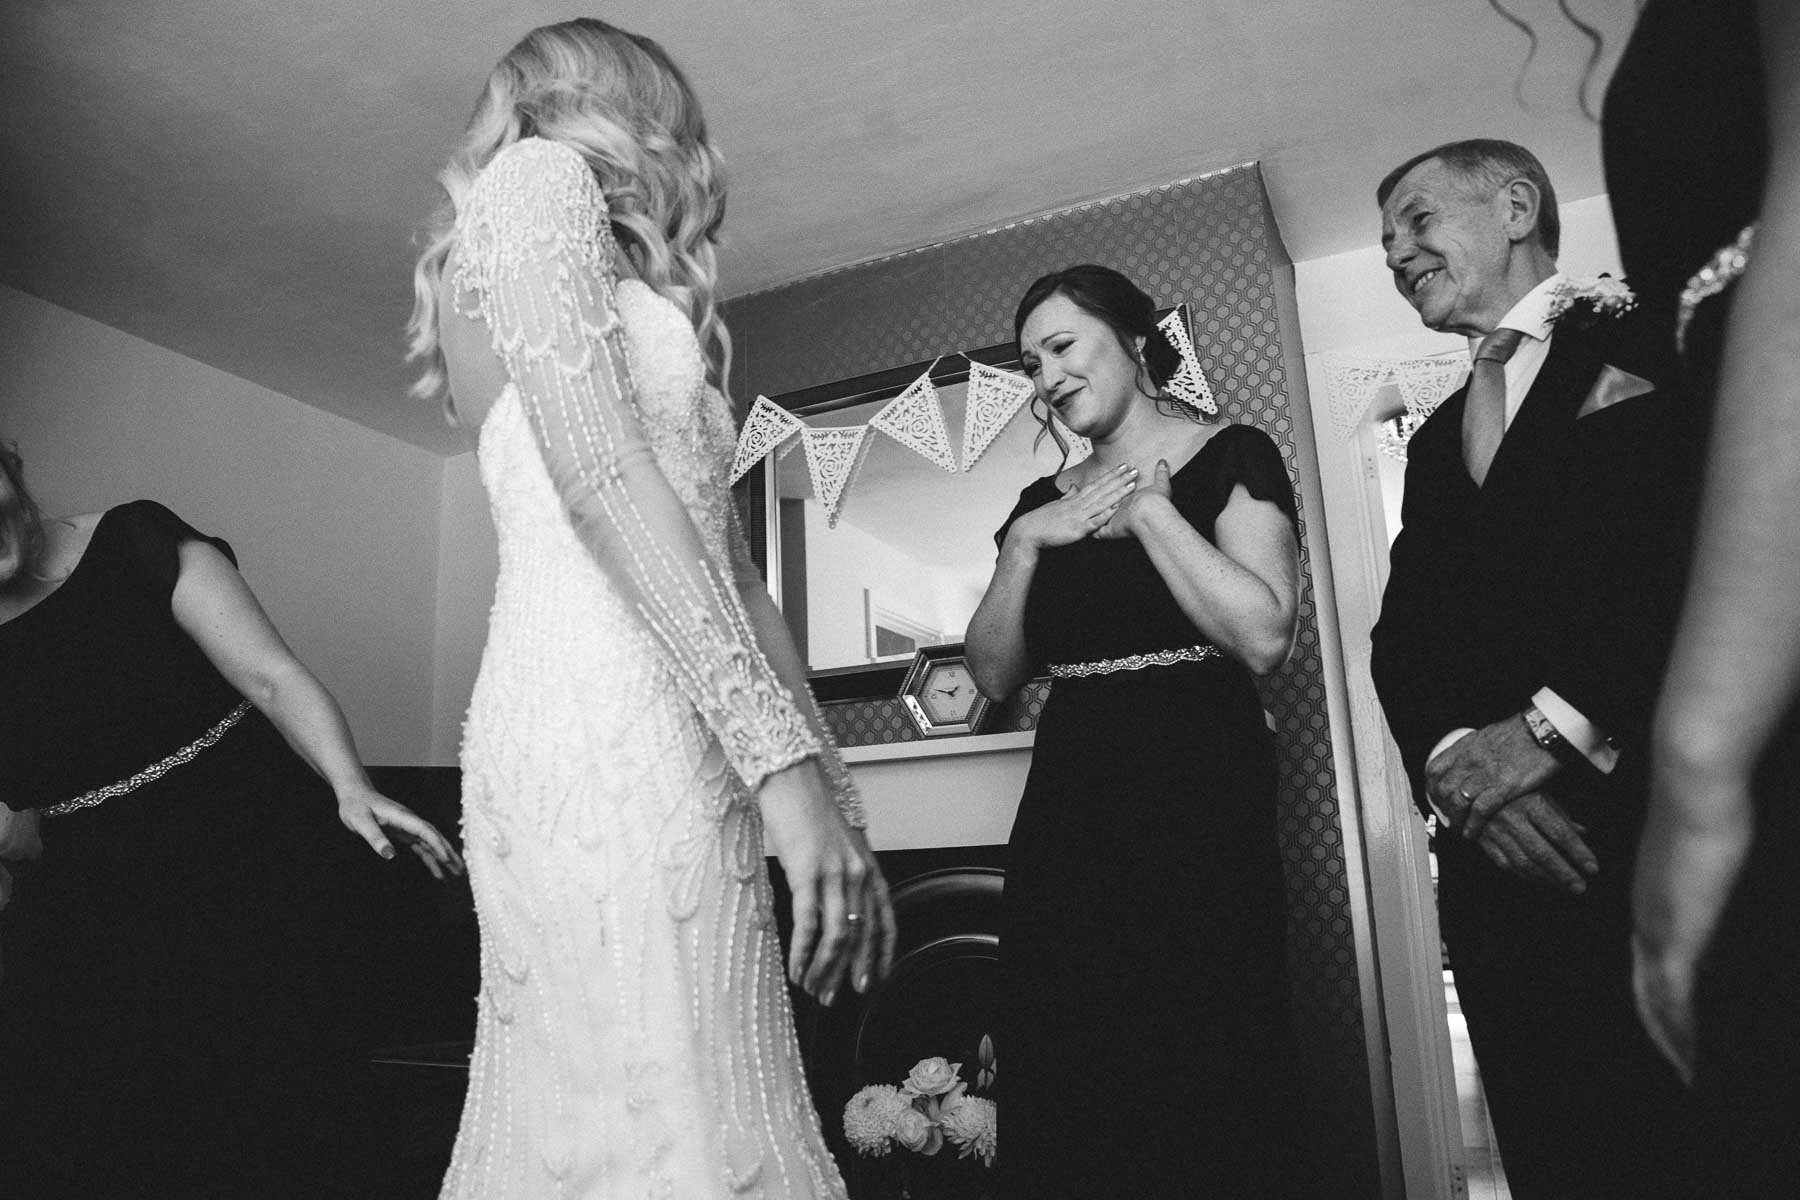 EMotional bridesmaids seeing the bride and her dress for the first time